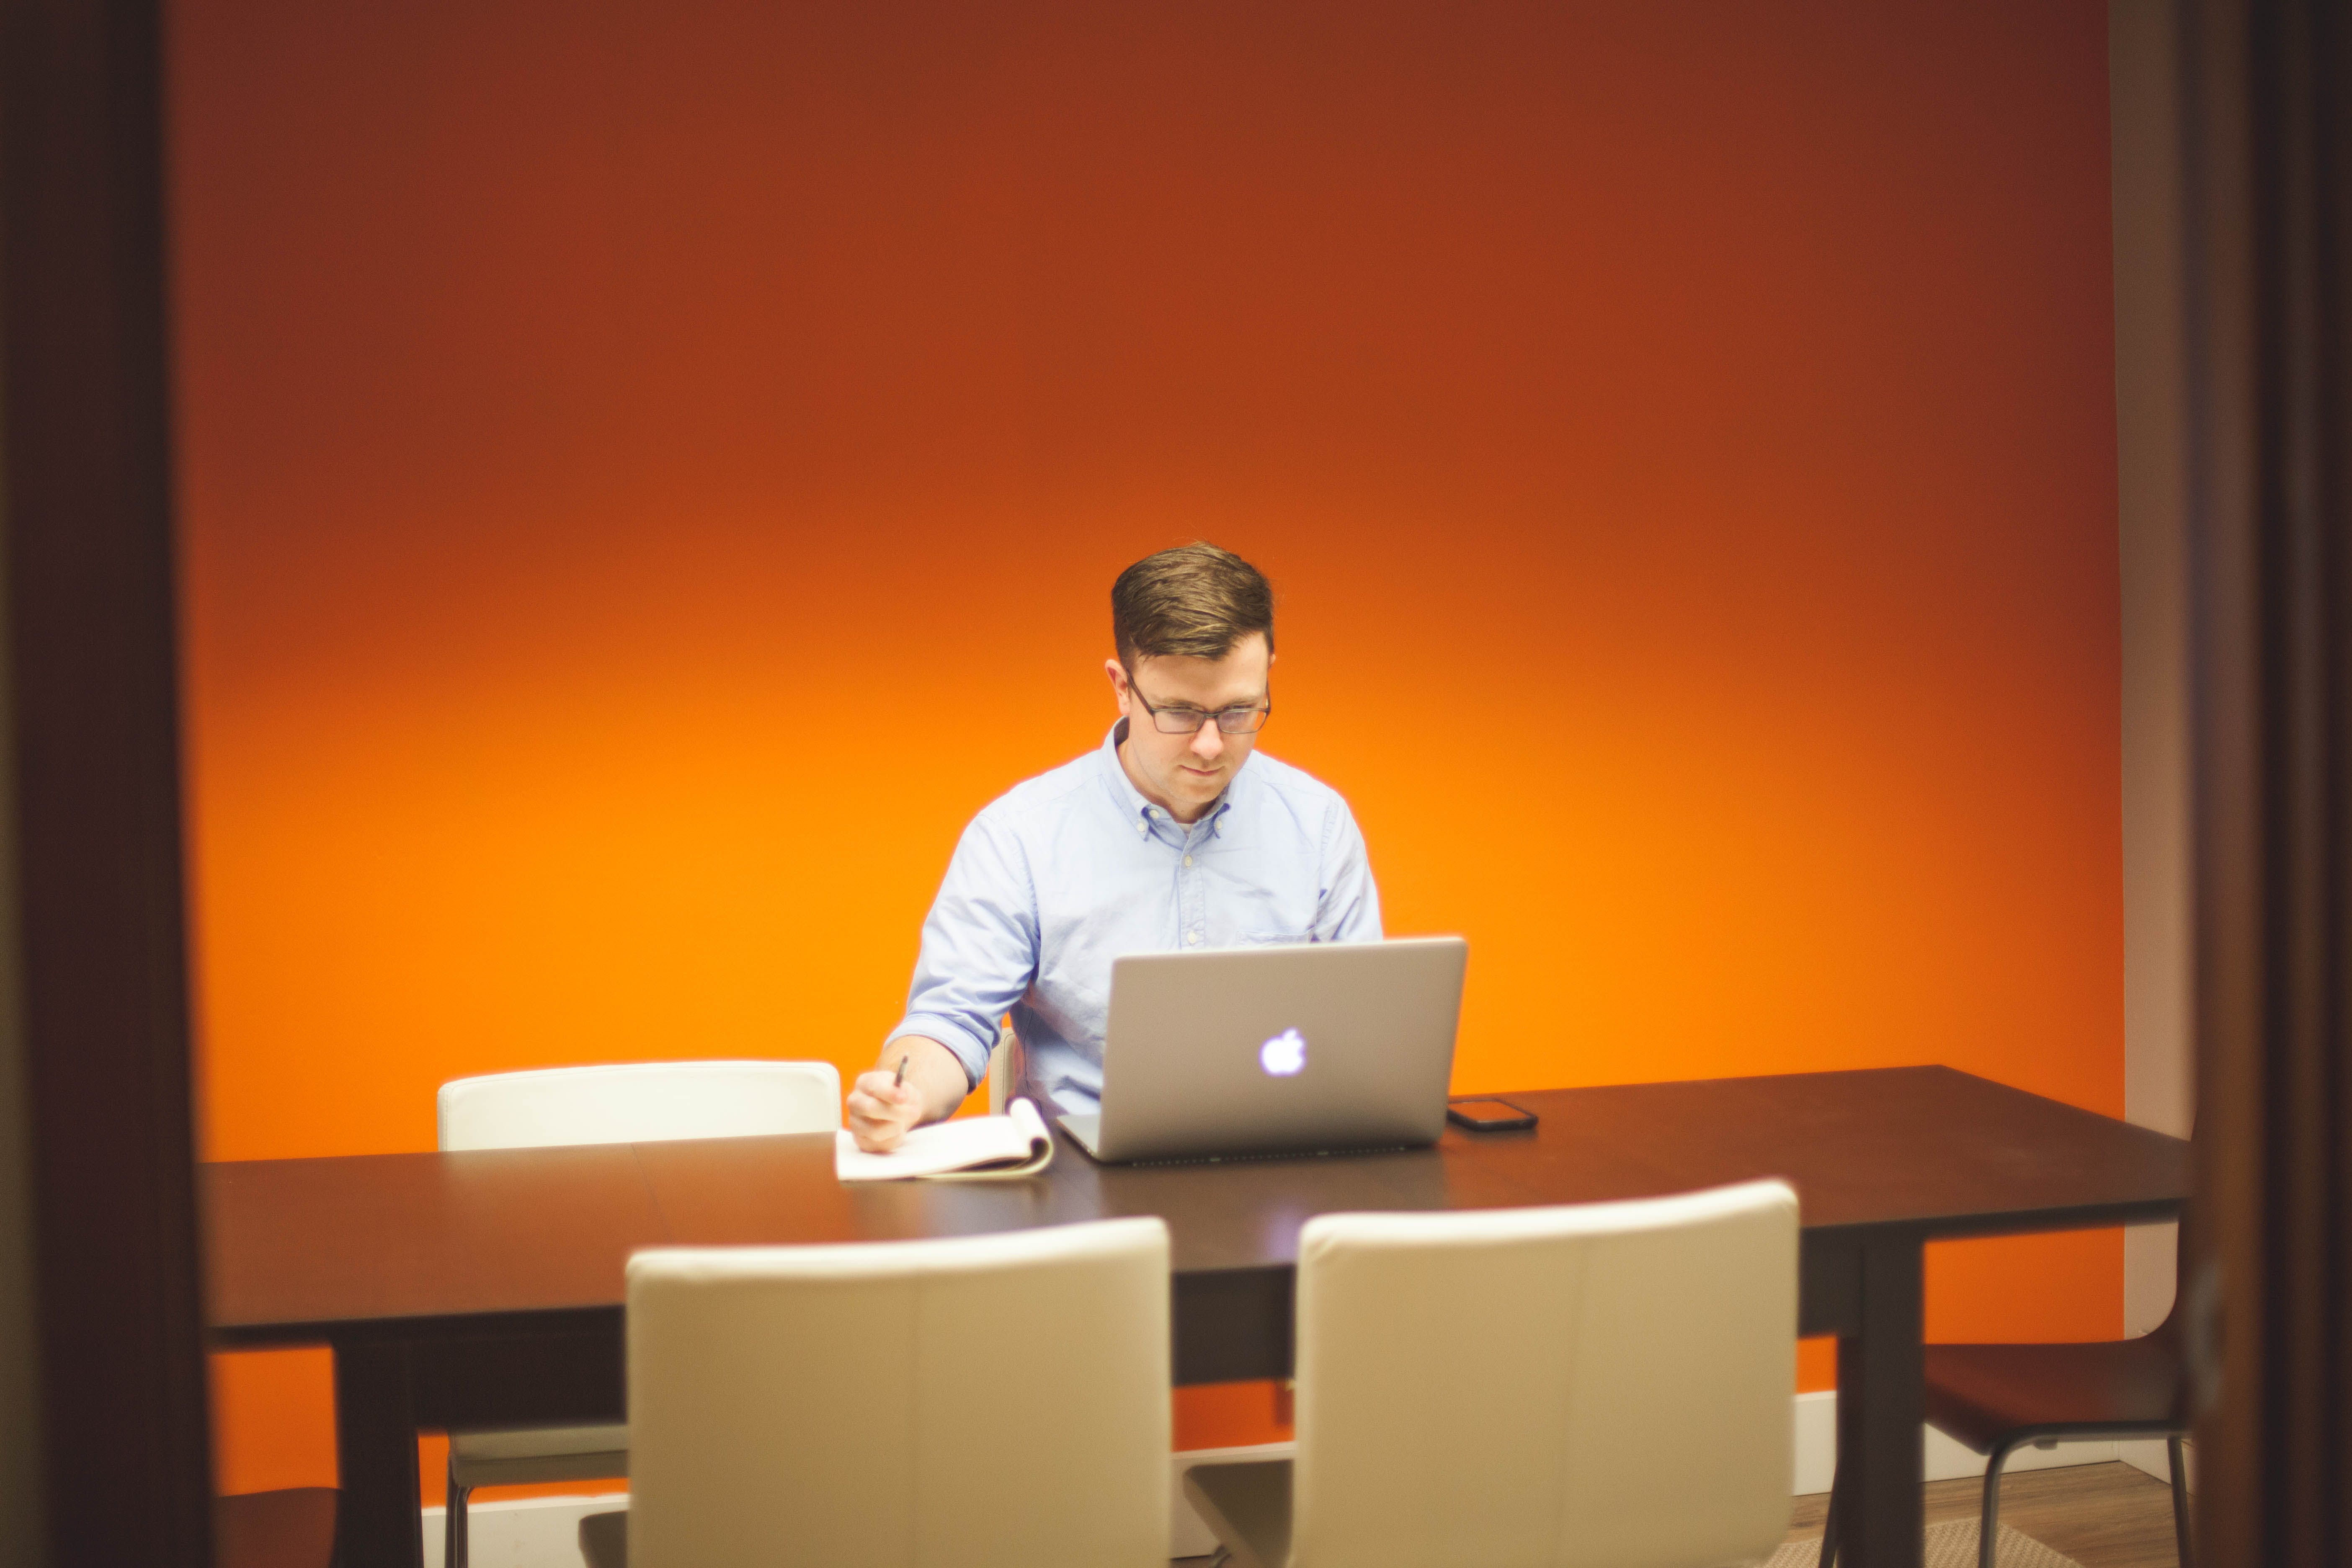 Free stock photo of man, person, apple, desk